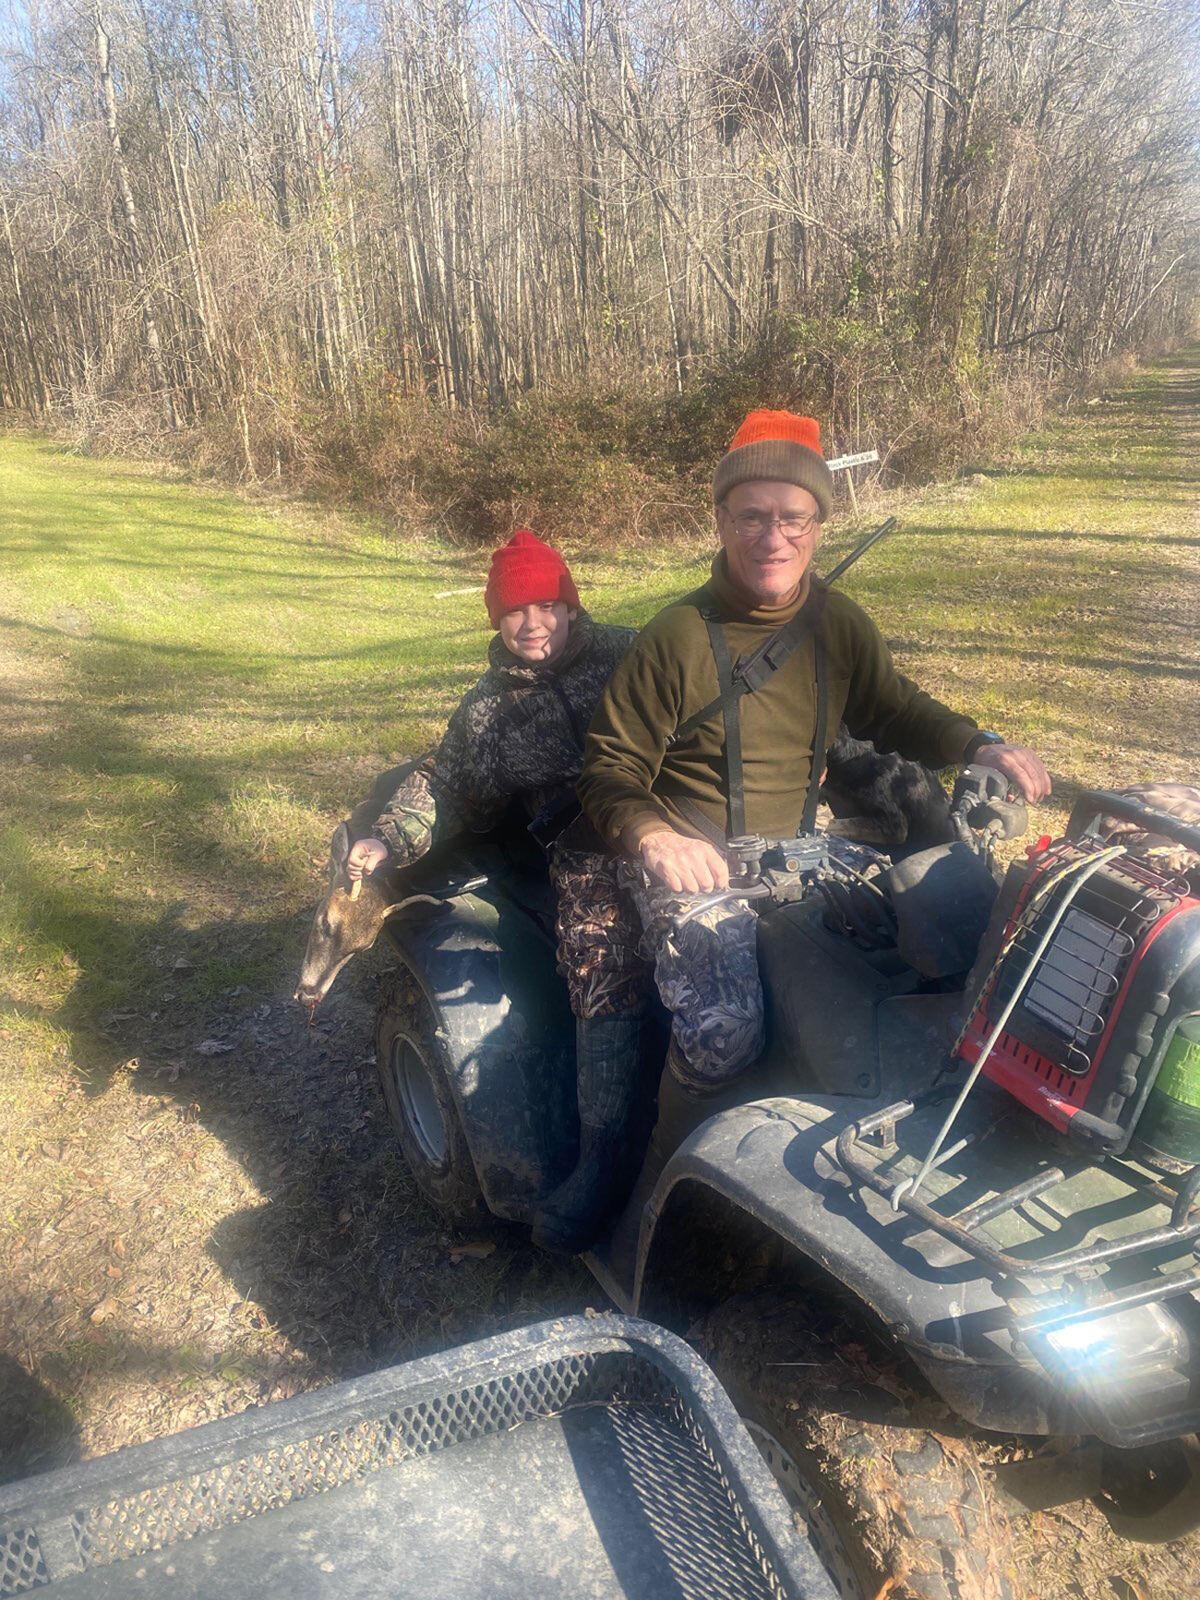 'Just an amazing feeling,' Edwards, 11, says about special deer hunt with granddad